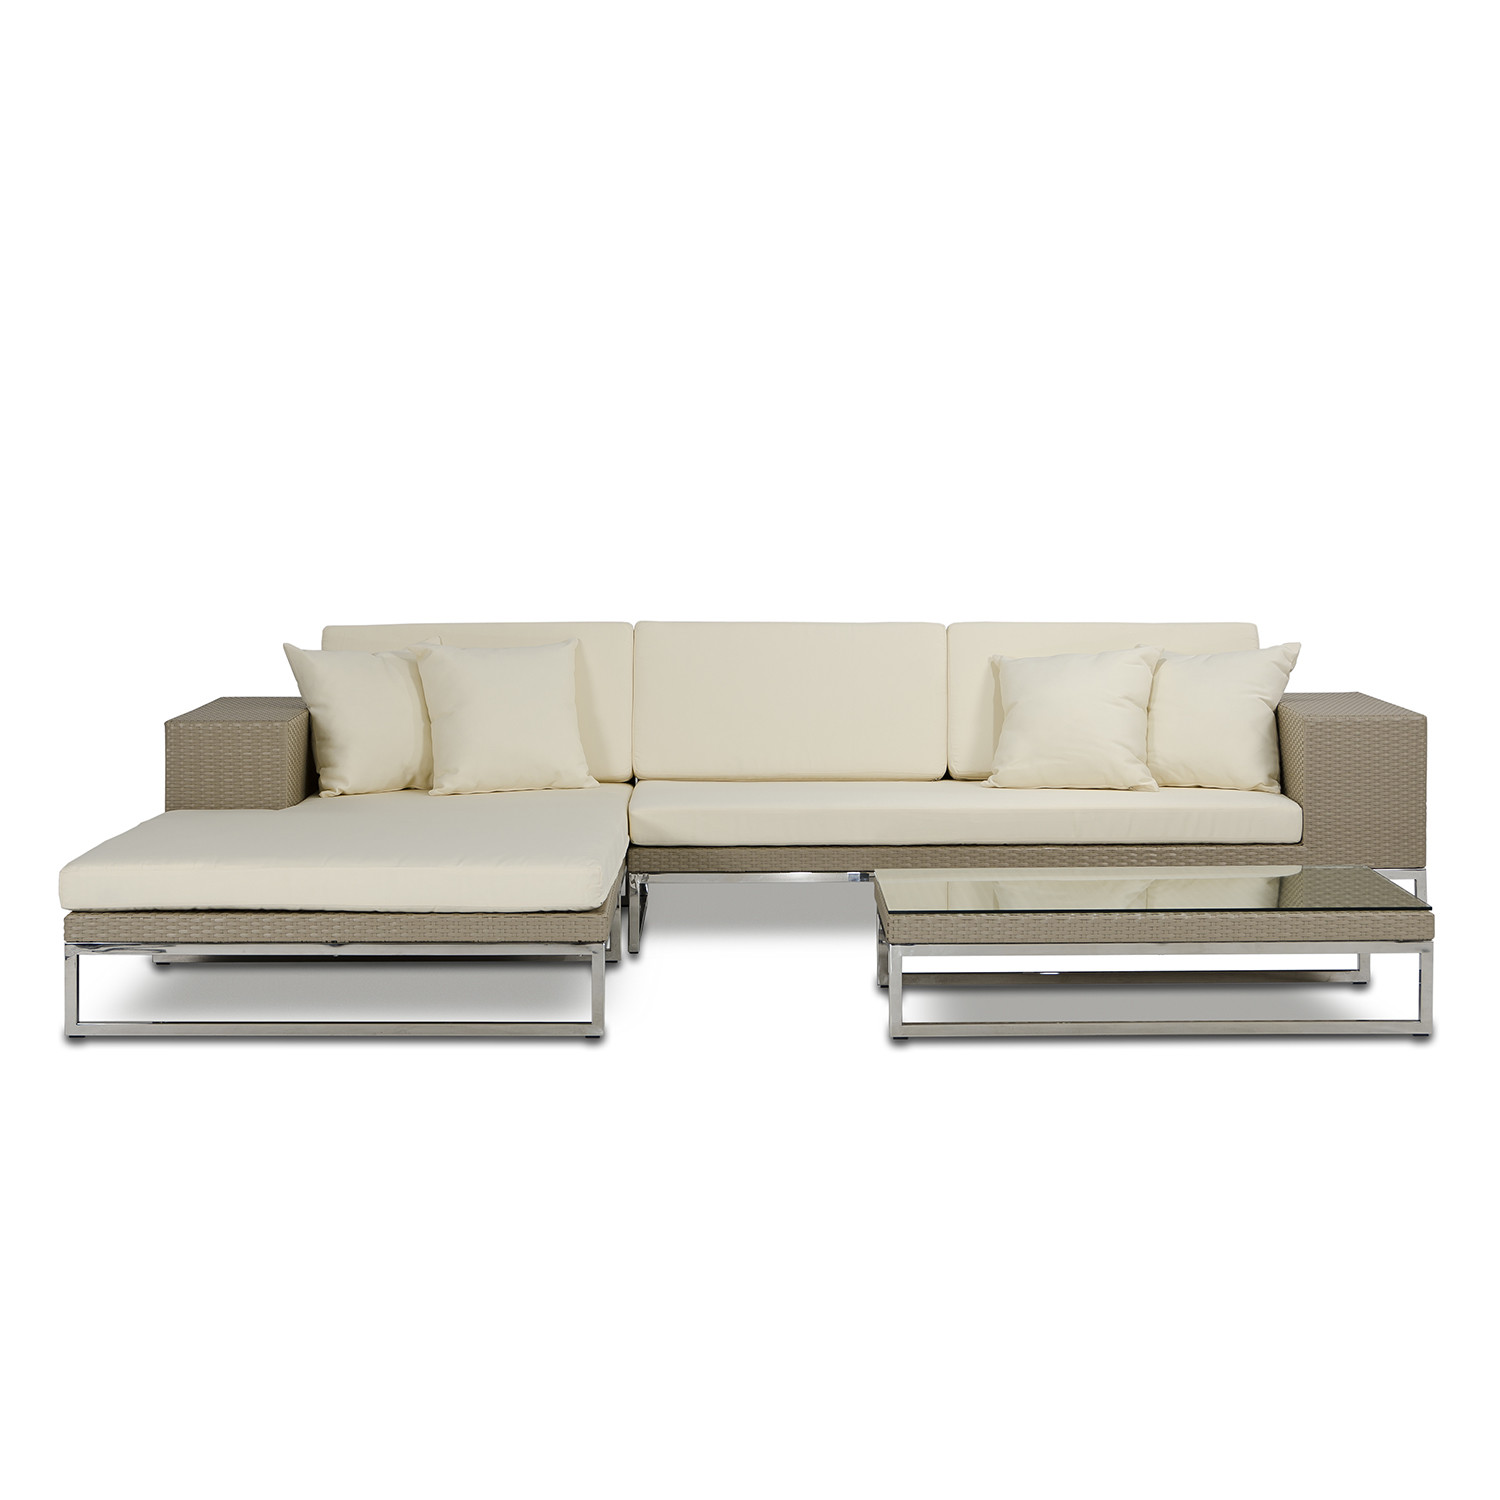 Renava limba modern patio sectional sofa vig touch of for Outdoor sofa sale